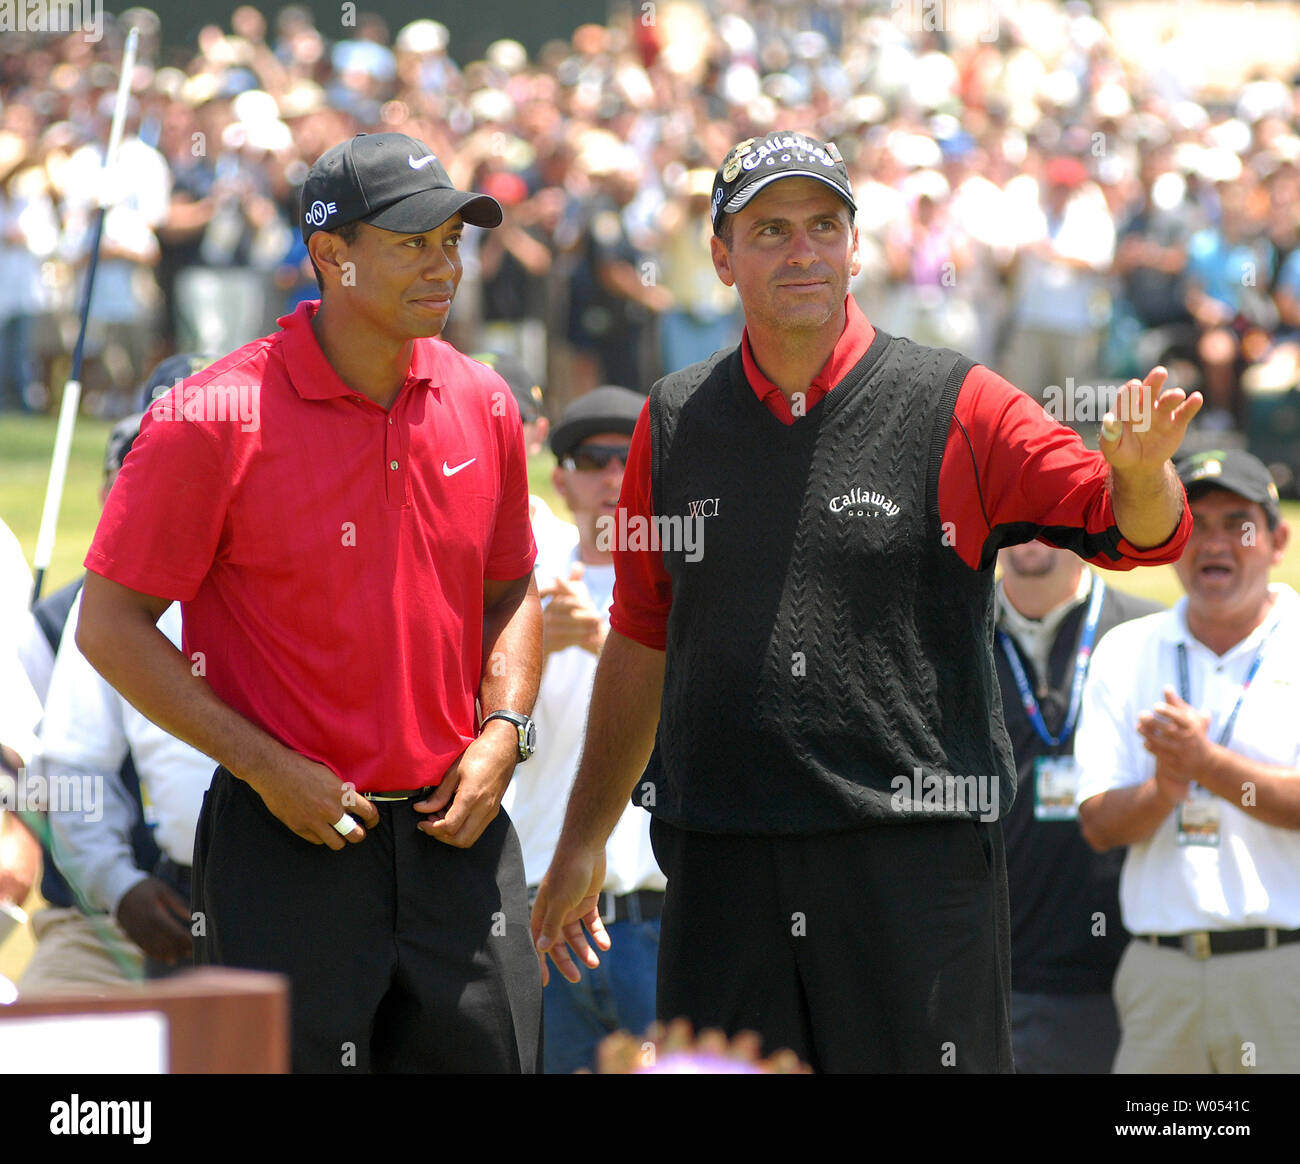 Tiger Woods (L) and Rocco Mediate stand on the 18th hole after Woods won the playoff round of the US Open at the Torrey Pines Golf Course in San Diego on June 16, 2008. (UPI Photo/Earl S. Cryer) - Stock Image